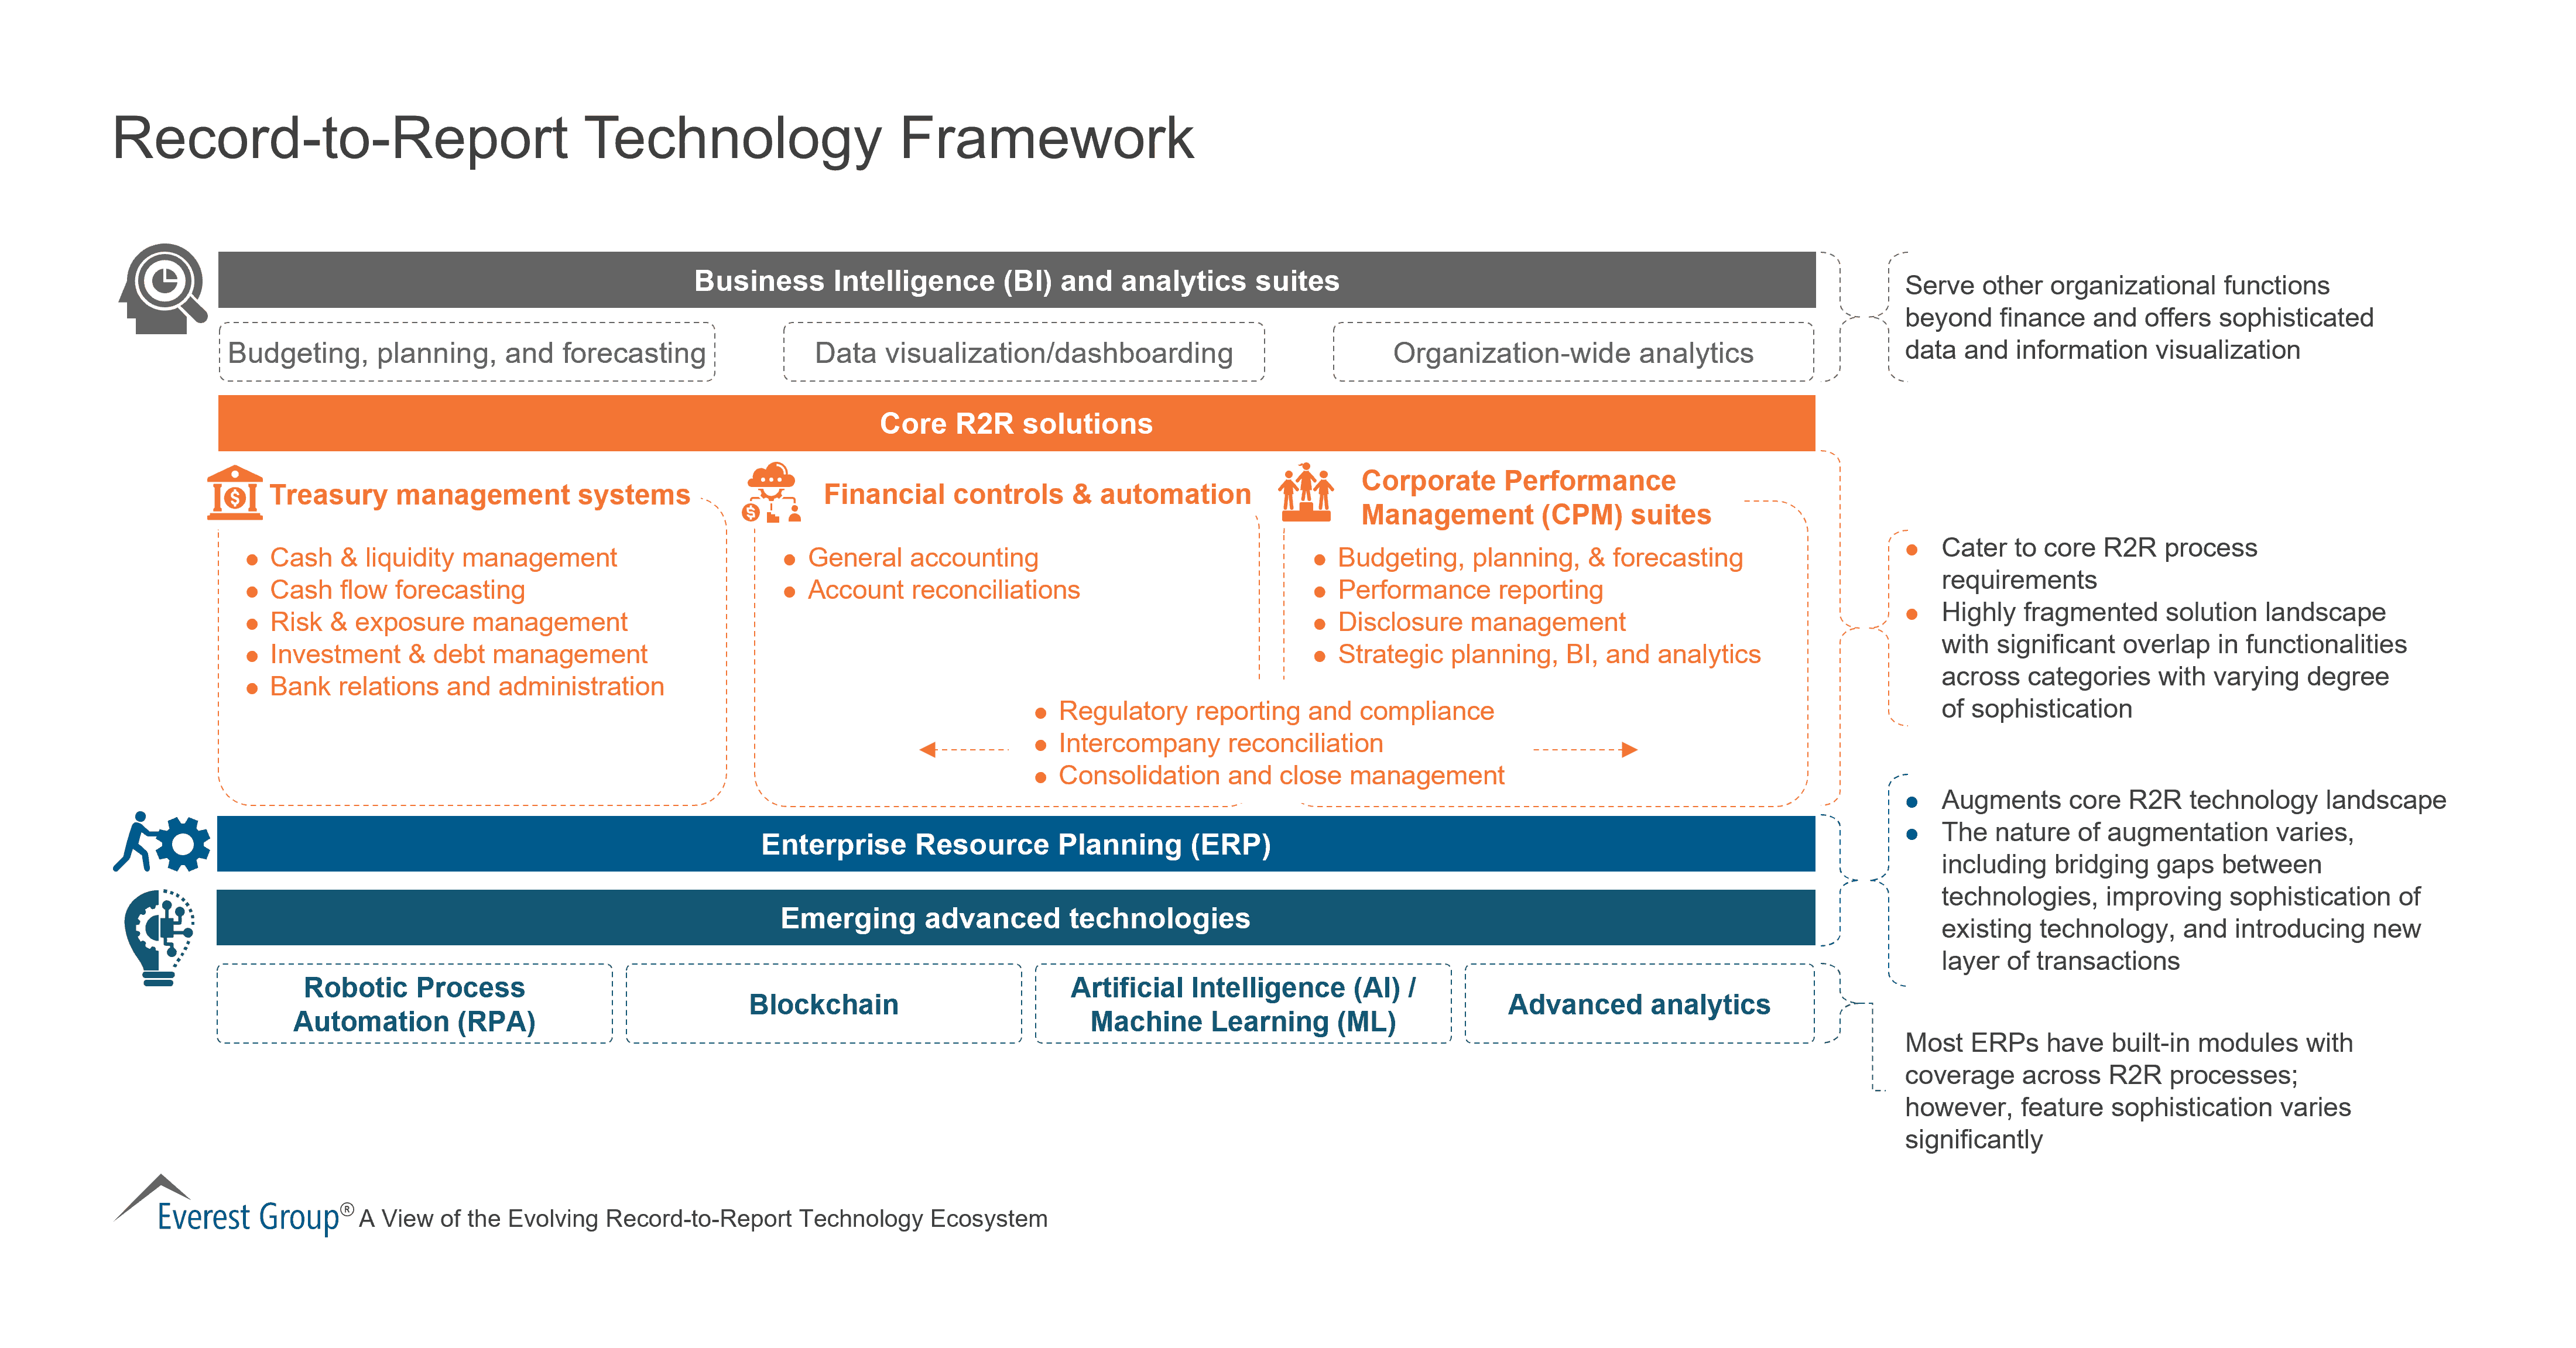 Record-to-Report Technology Framework